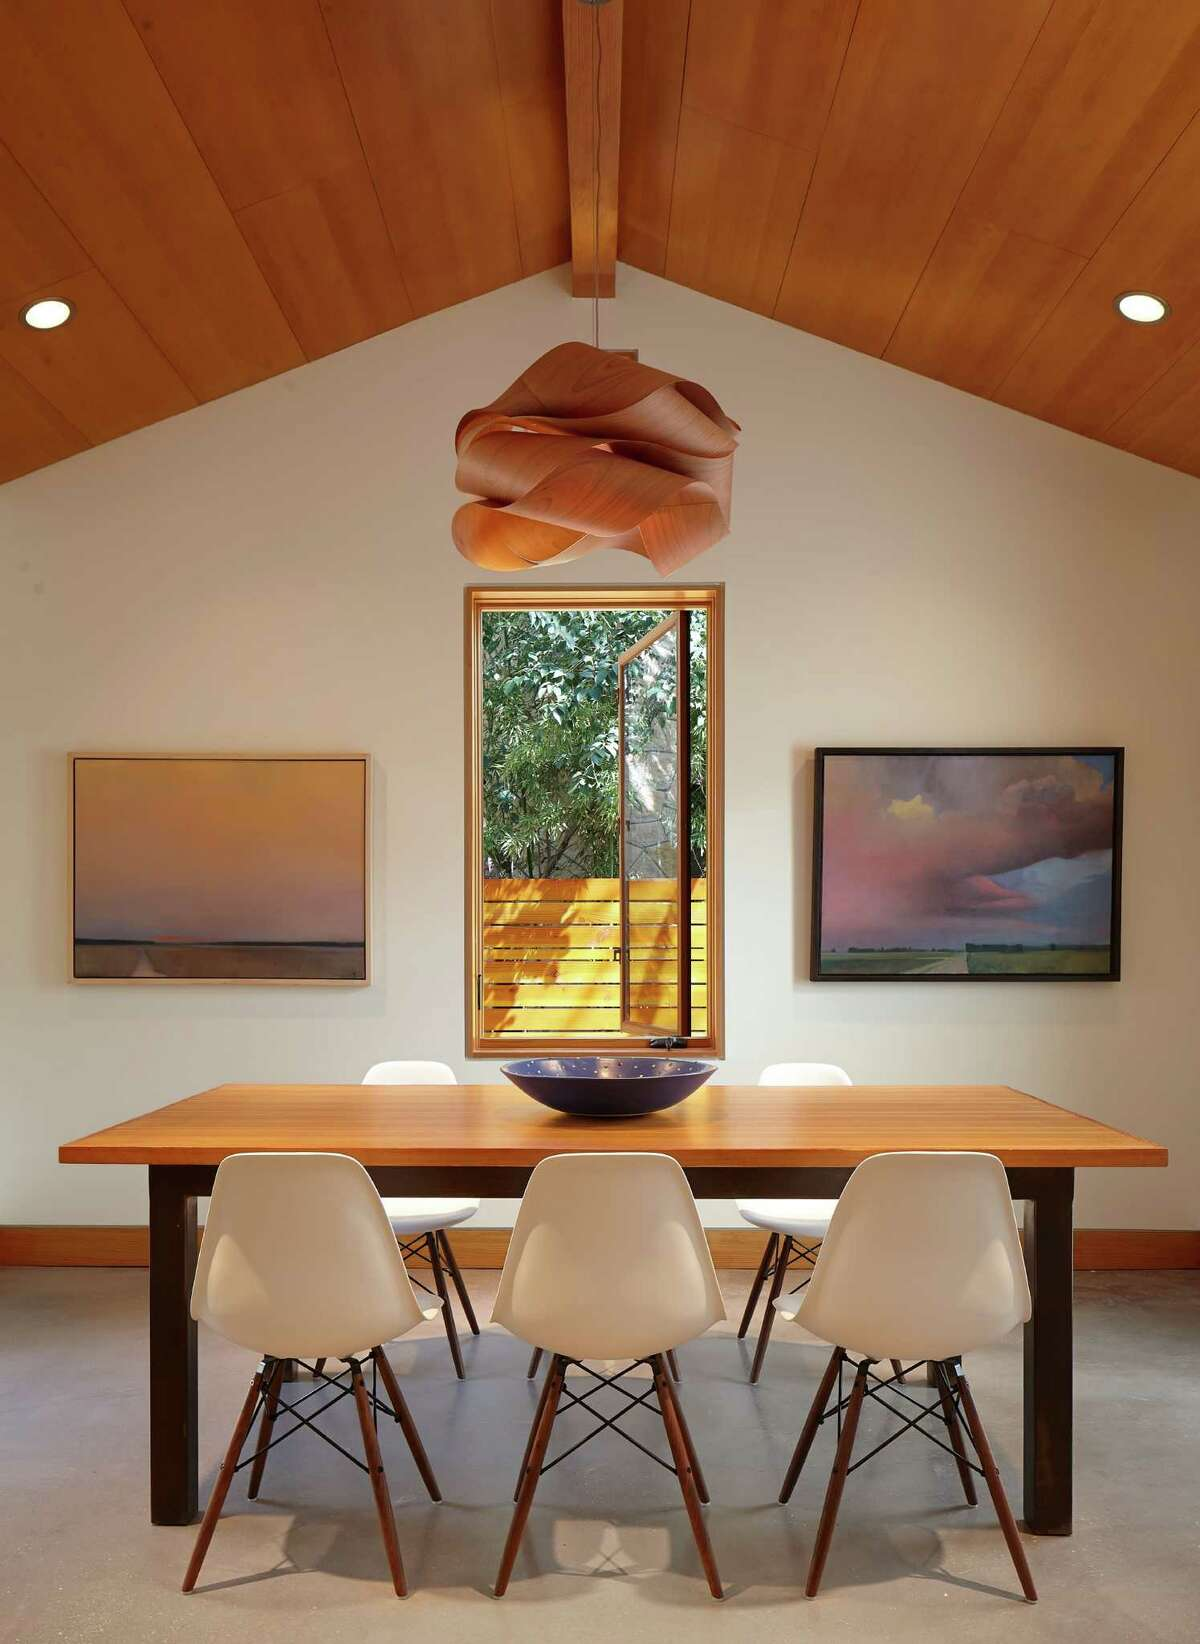 A light fixture made from a giant shaving of cherry veneer and bought at Nest complements fir ceilings in the home of Craig and Molly McMahon. The McMahons opened up the concrete home that was built in 1953 and gave it a modern minimalist aesthetic.